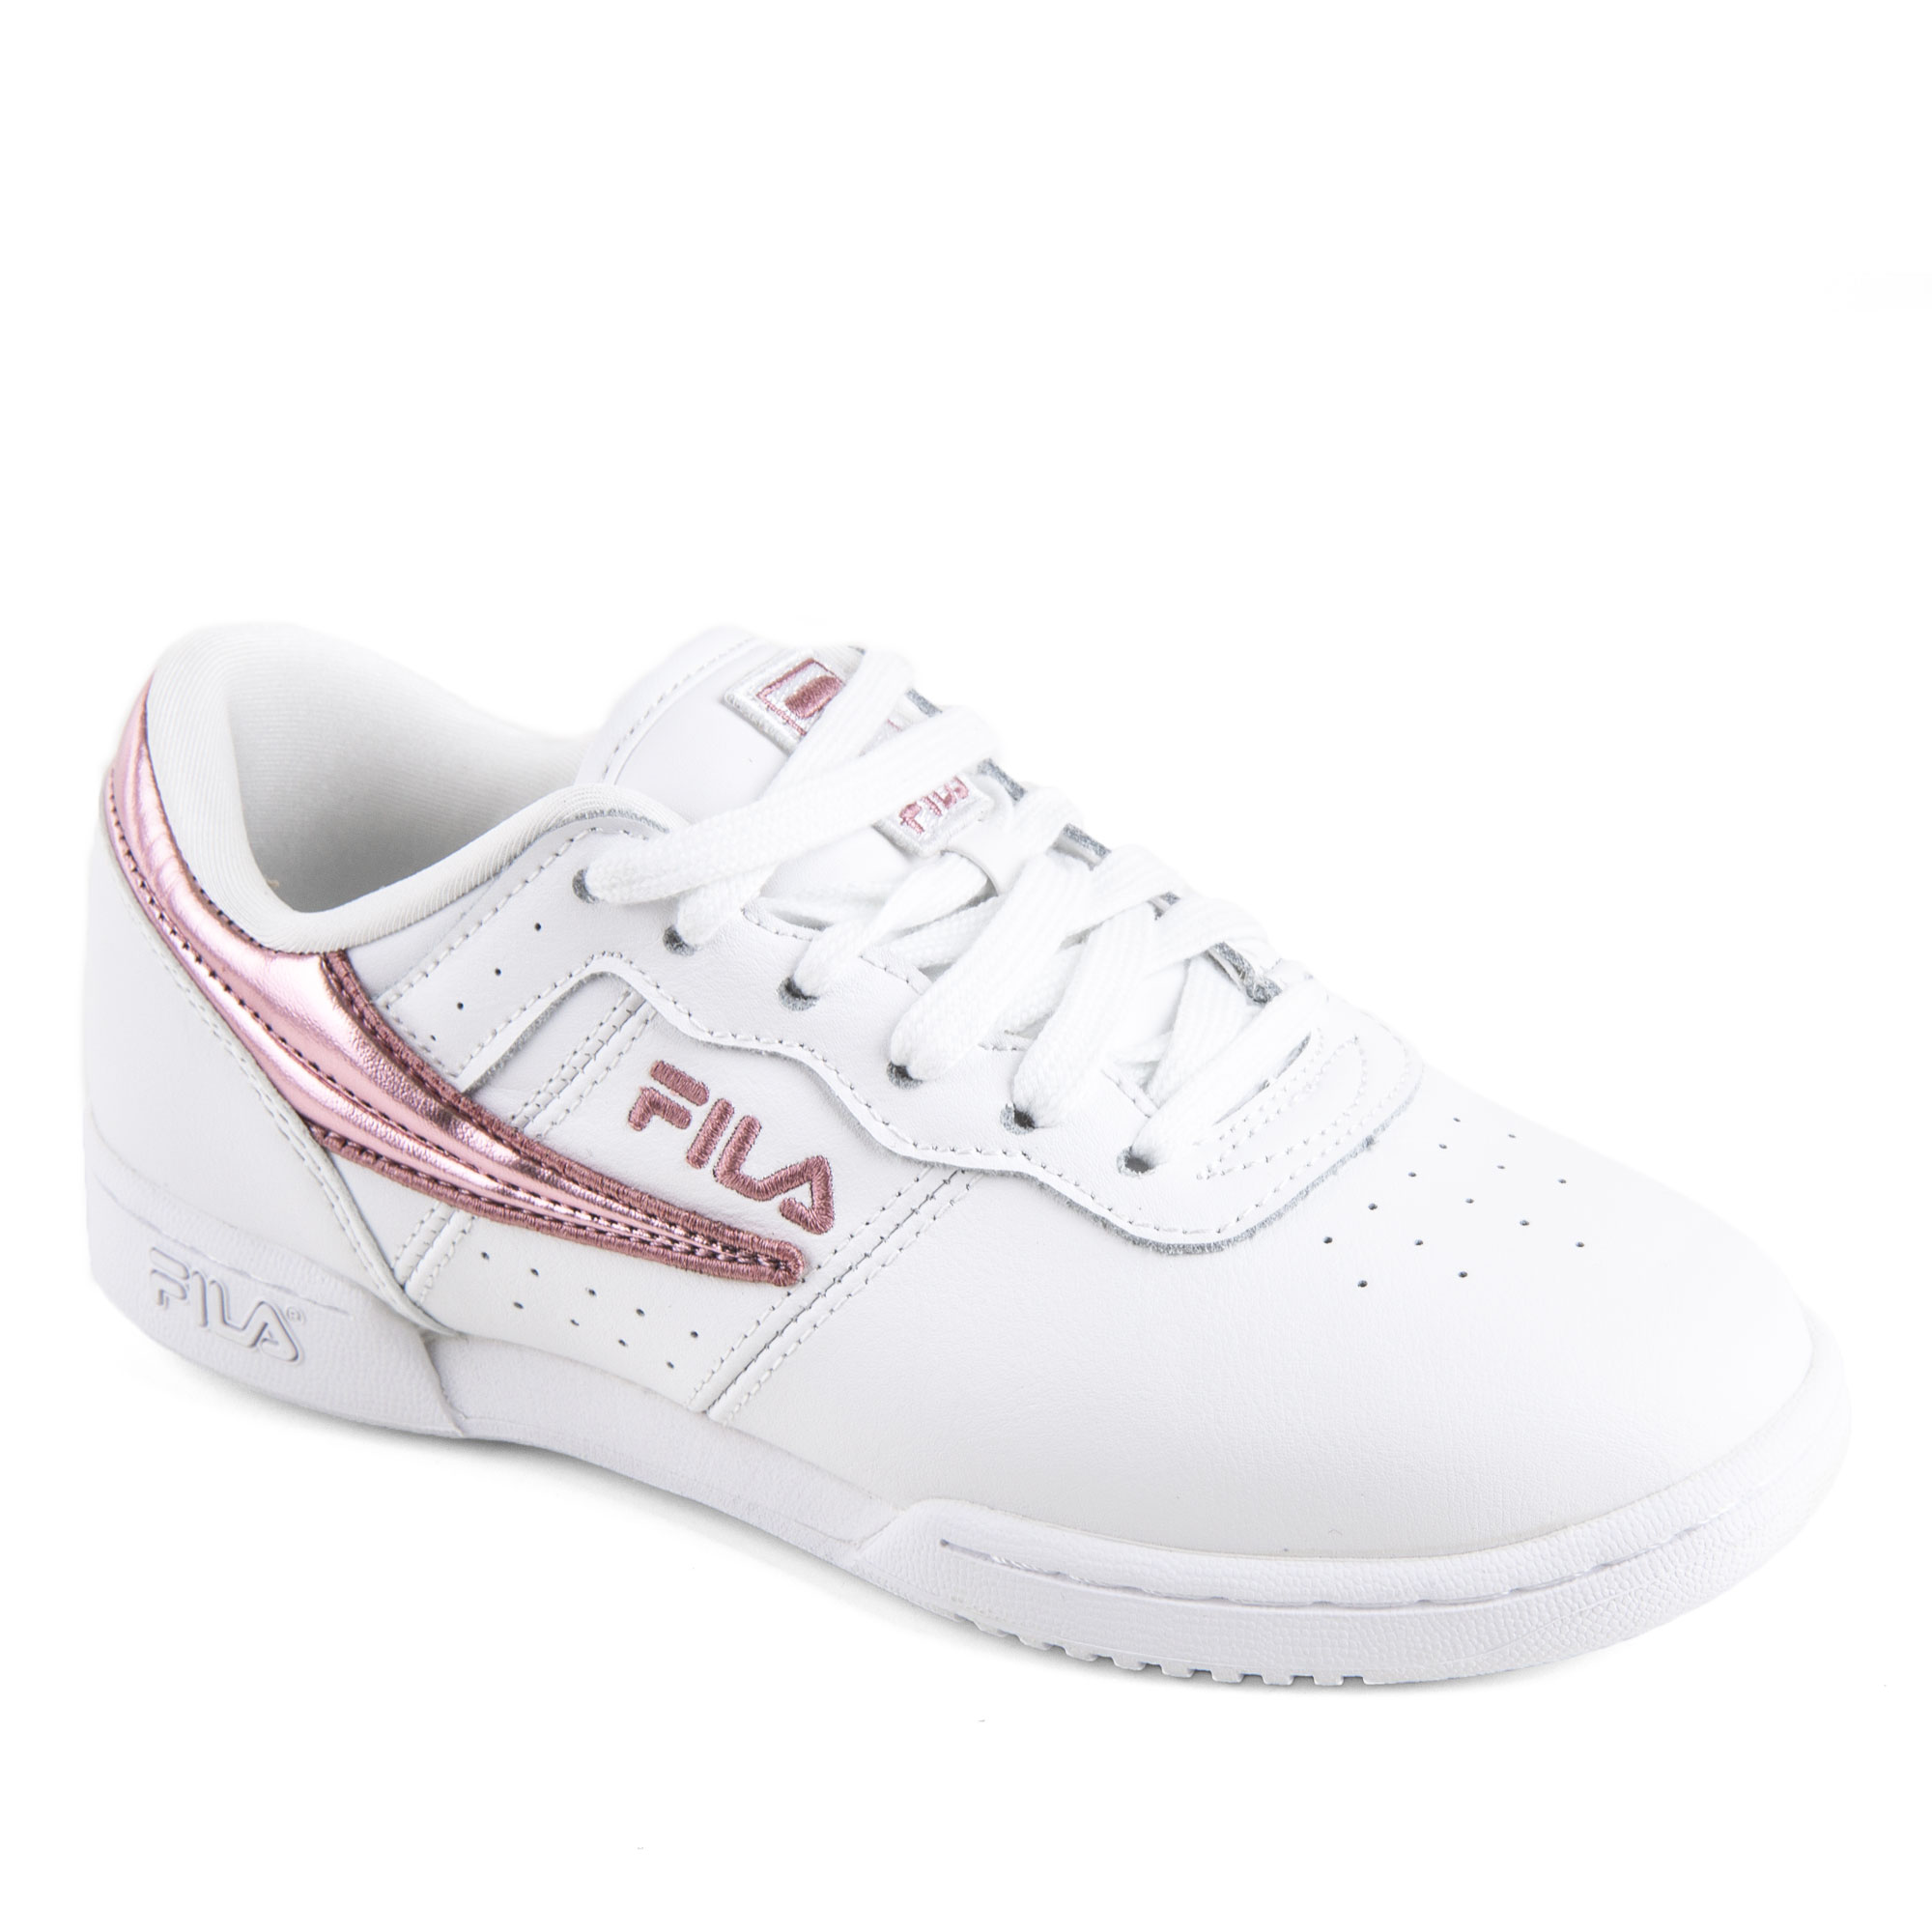 reasonably priced fashion new styles Baskets blanches et roses femme Original Fitness F WMN FILA